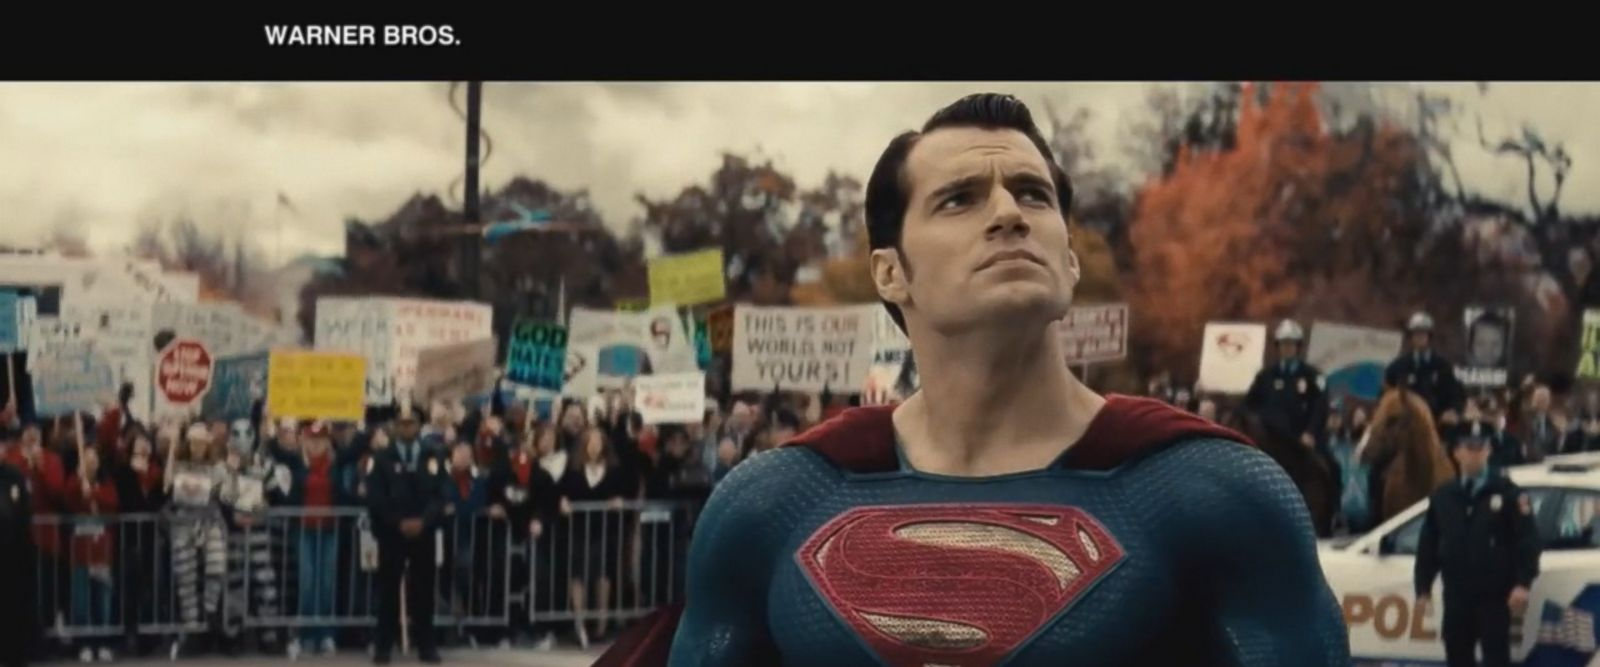 VIDEO: Nominations are in for the 37th annual Golden Raspberry Awards, or Razzies, and it's not looking good for Batman and Superman, who waged war against each other on the big screen earlier this year.